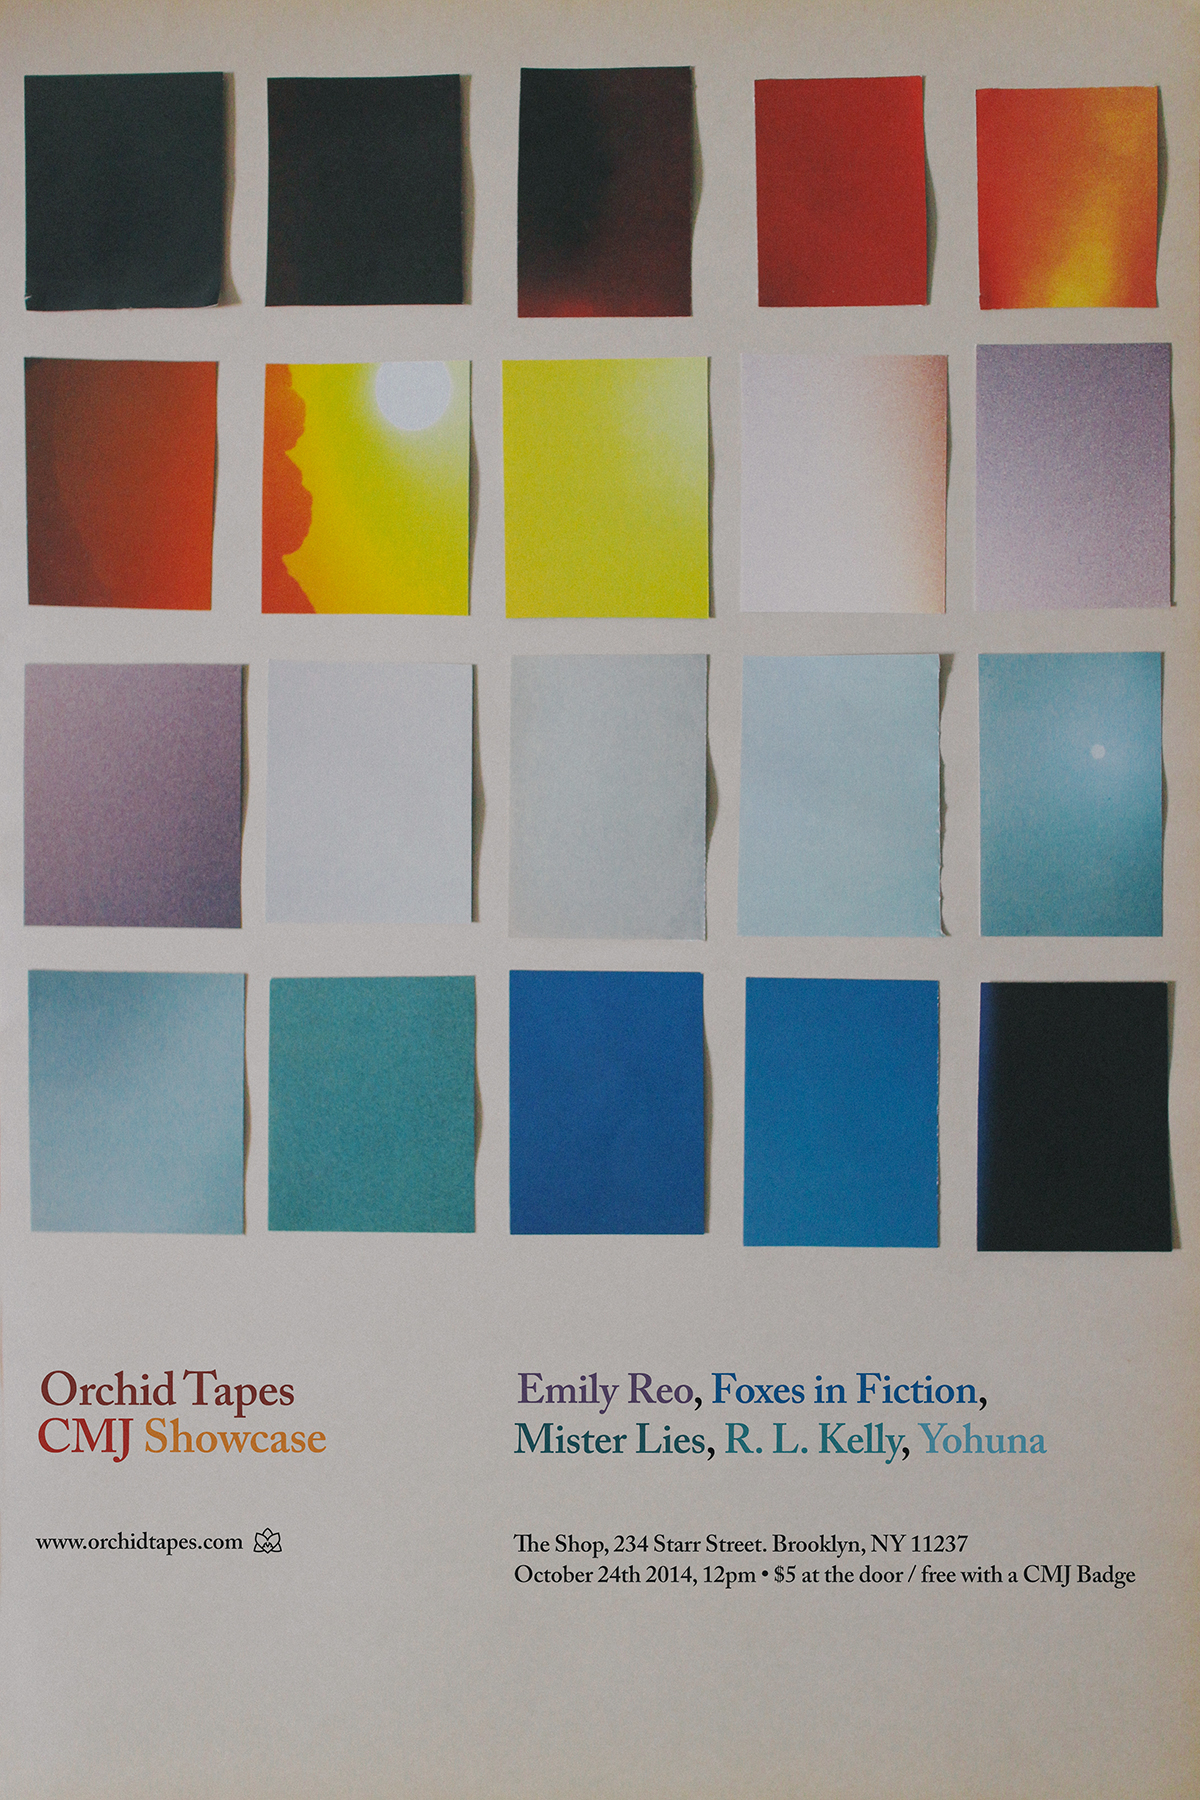 Orchid Tapes CMJ 2014 Showcase Poster